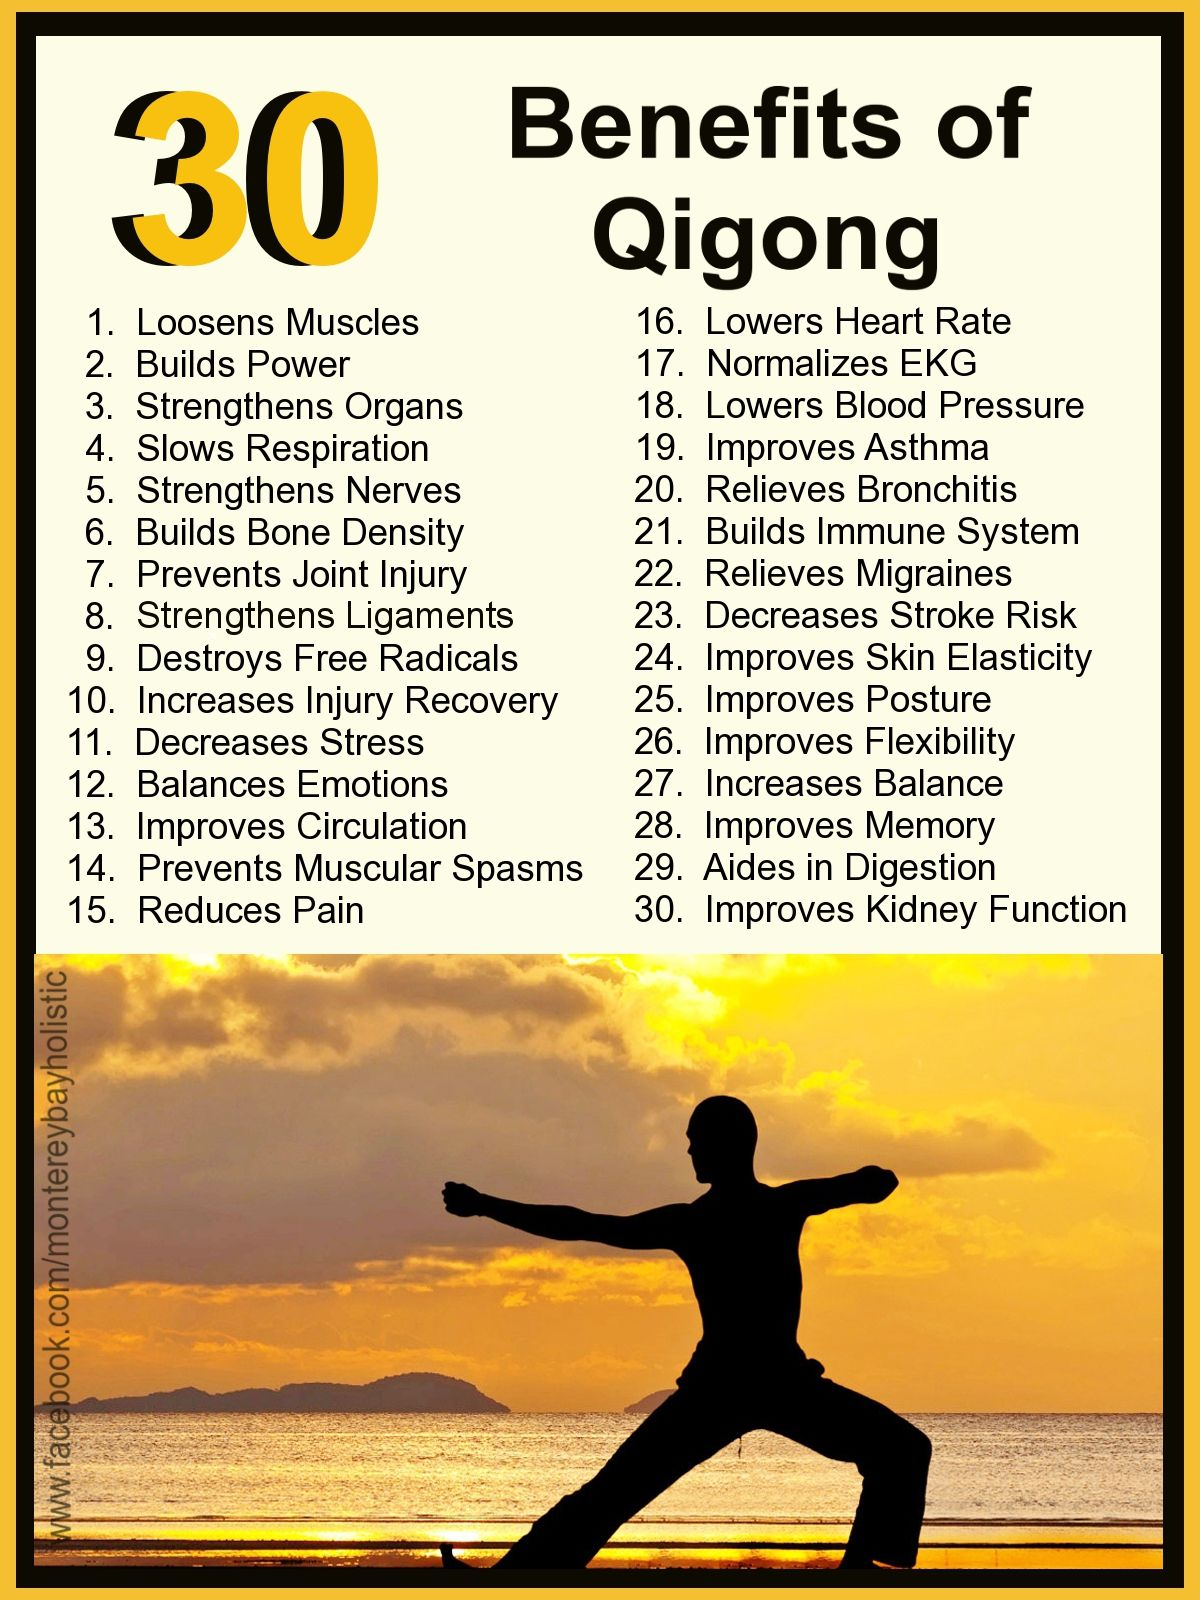 I want to take another Tai Chi class. 30 Benefits of Qigong and TaiChi